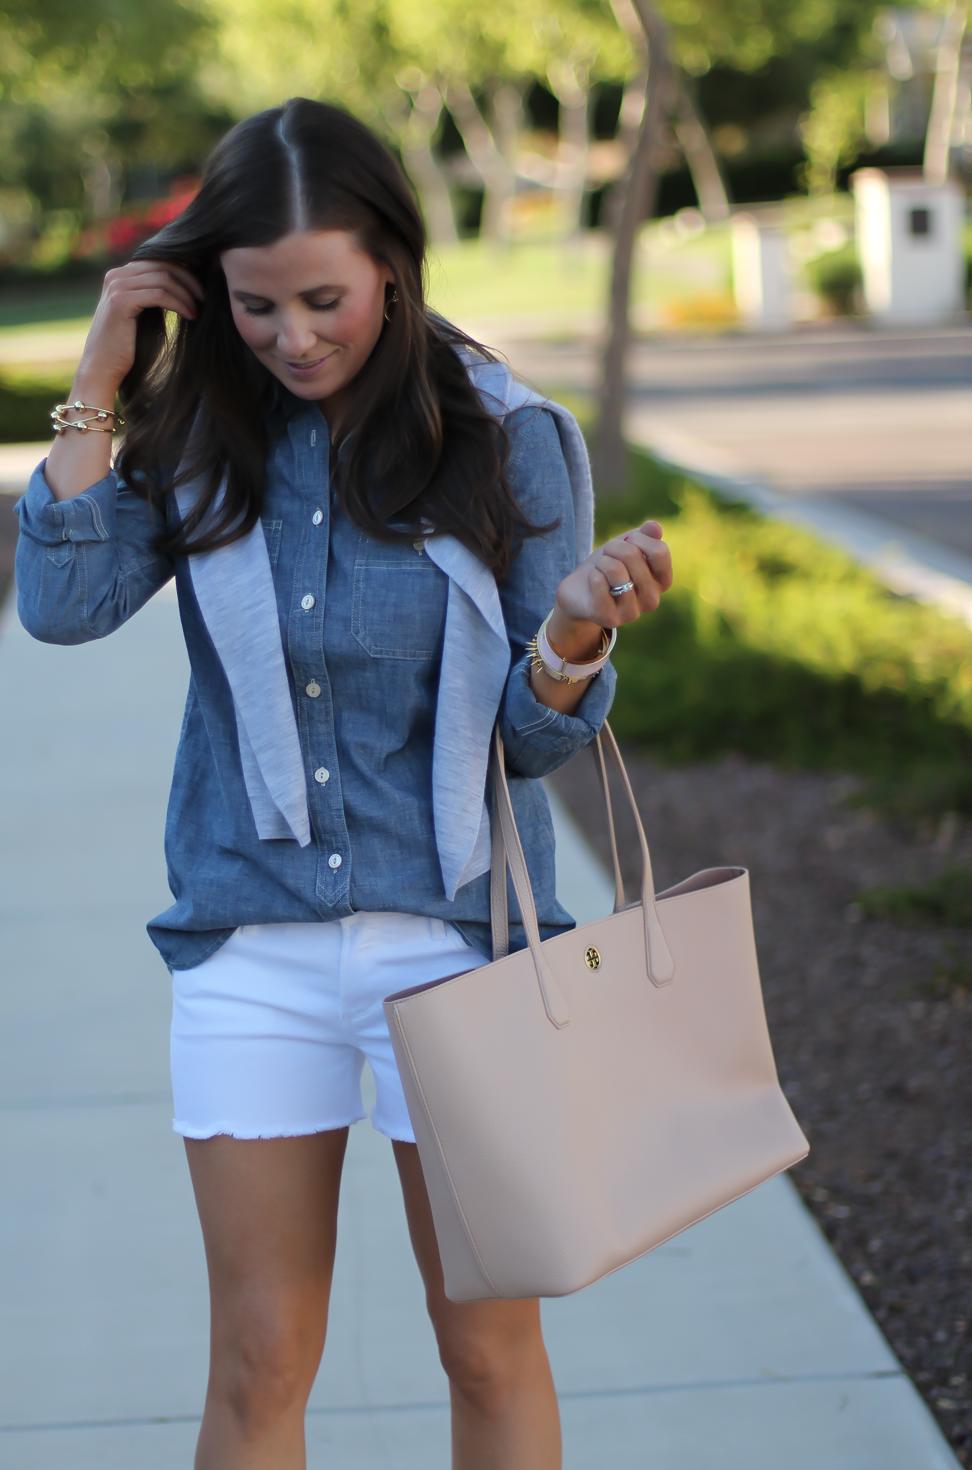 Chambray Shirt, White Cutoff Shorts, Beige Espadrille Wedges, Beige Tote, Grey Cashmere Cardigan, J.Crew, Citizens of Humanity, Vince, Tory Burch 13